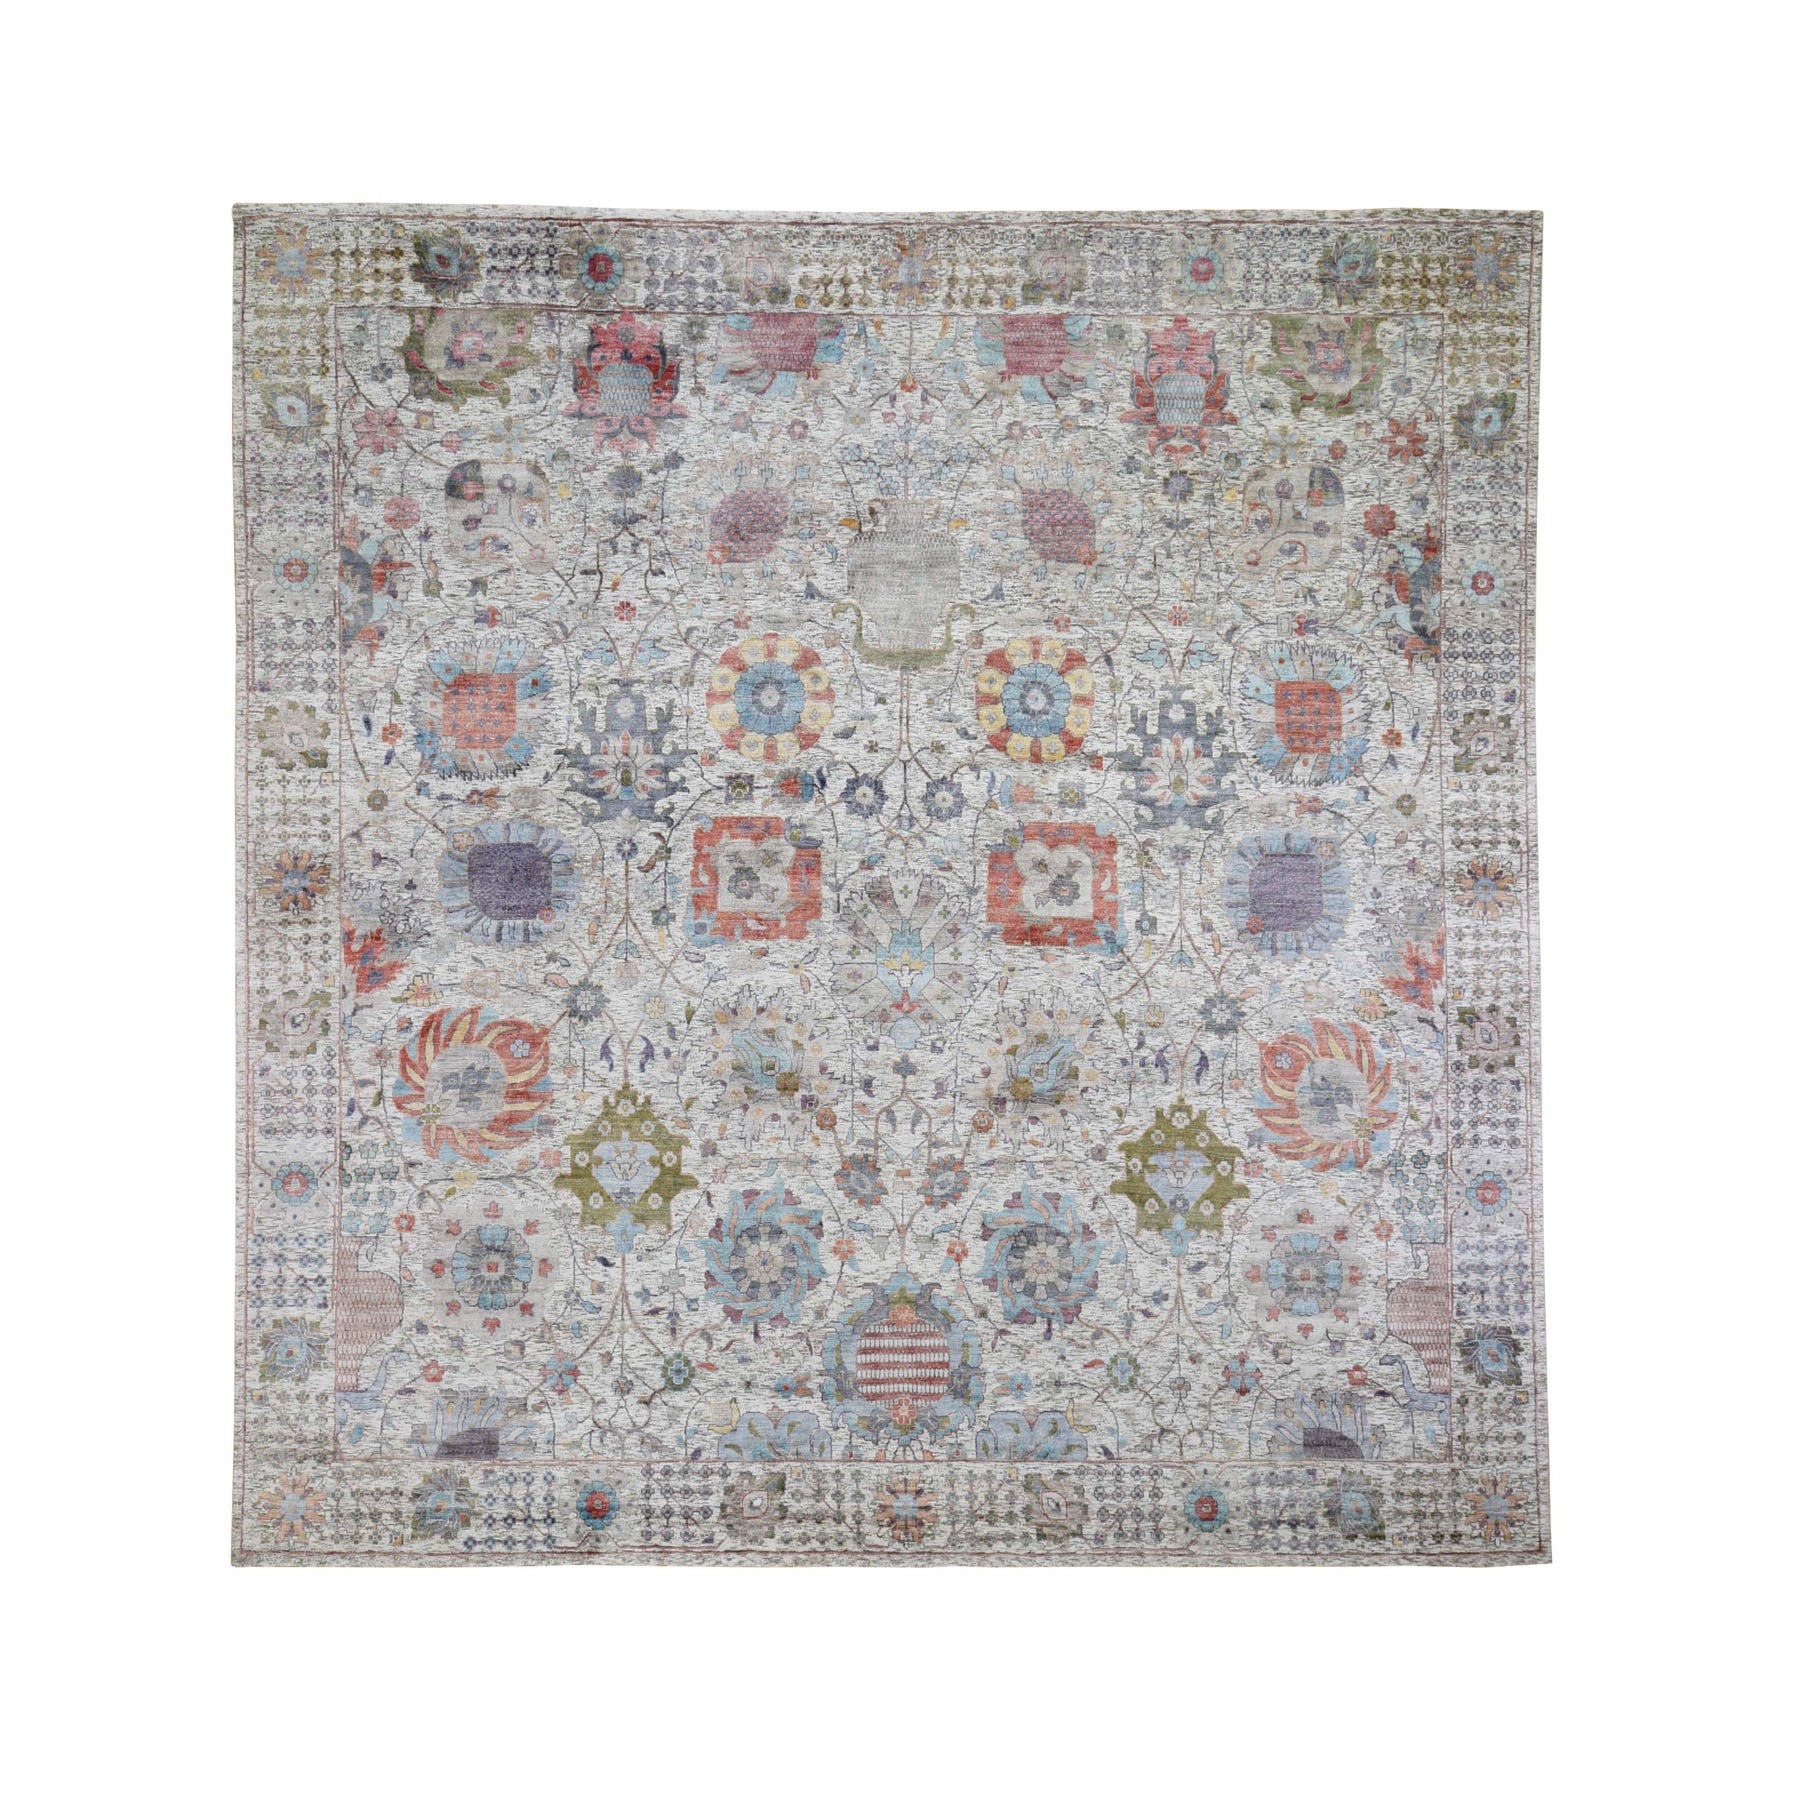 10'X10' Ivory Silk With Textured Wool Tabriz Hand Knotted Square Oriental Rug moad9c7e